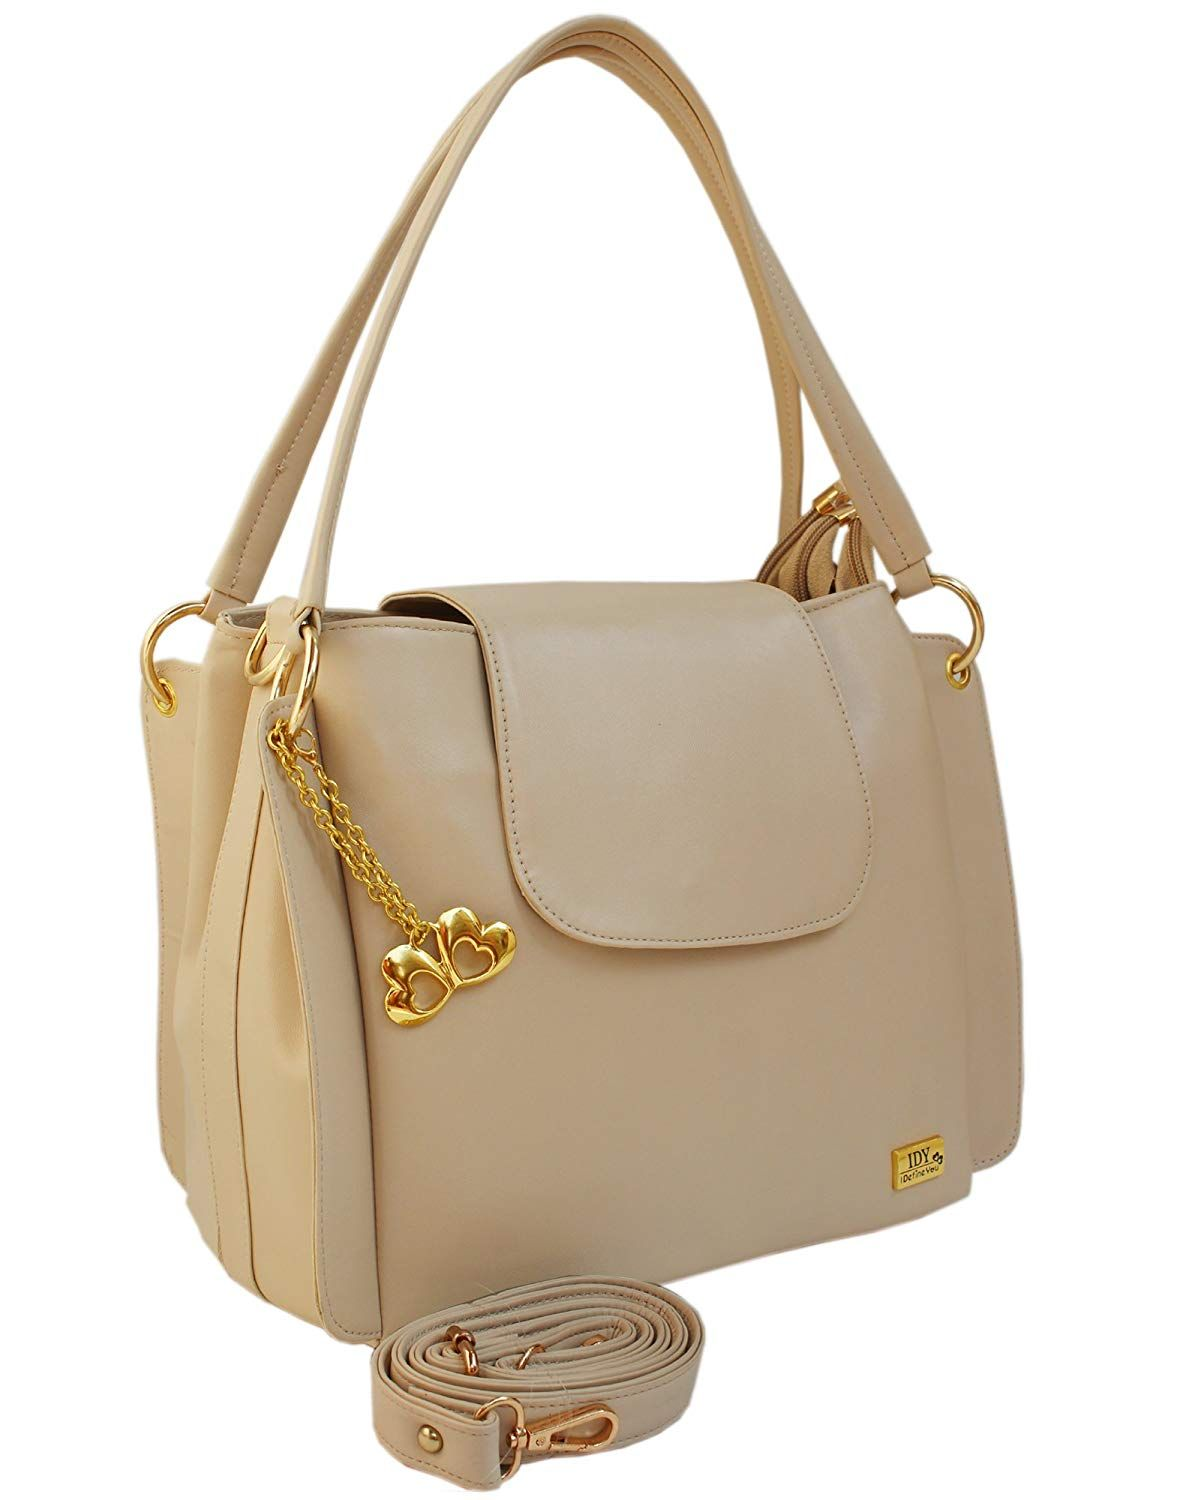 I Define You Latest Trend Cream Color Party Wear Handbag   Sling bag For  Girls and Women s from Rs 979.00  color  cream  define  handbag  latest   party   ... 16e8c2214a